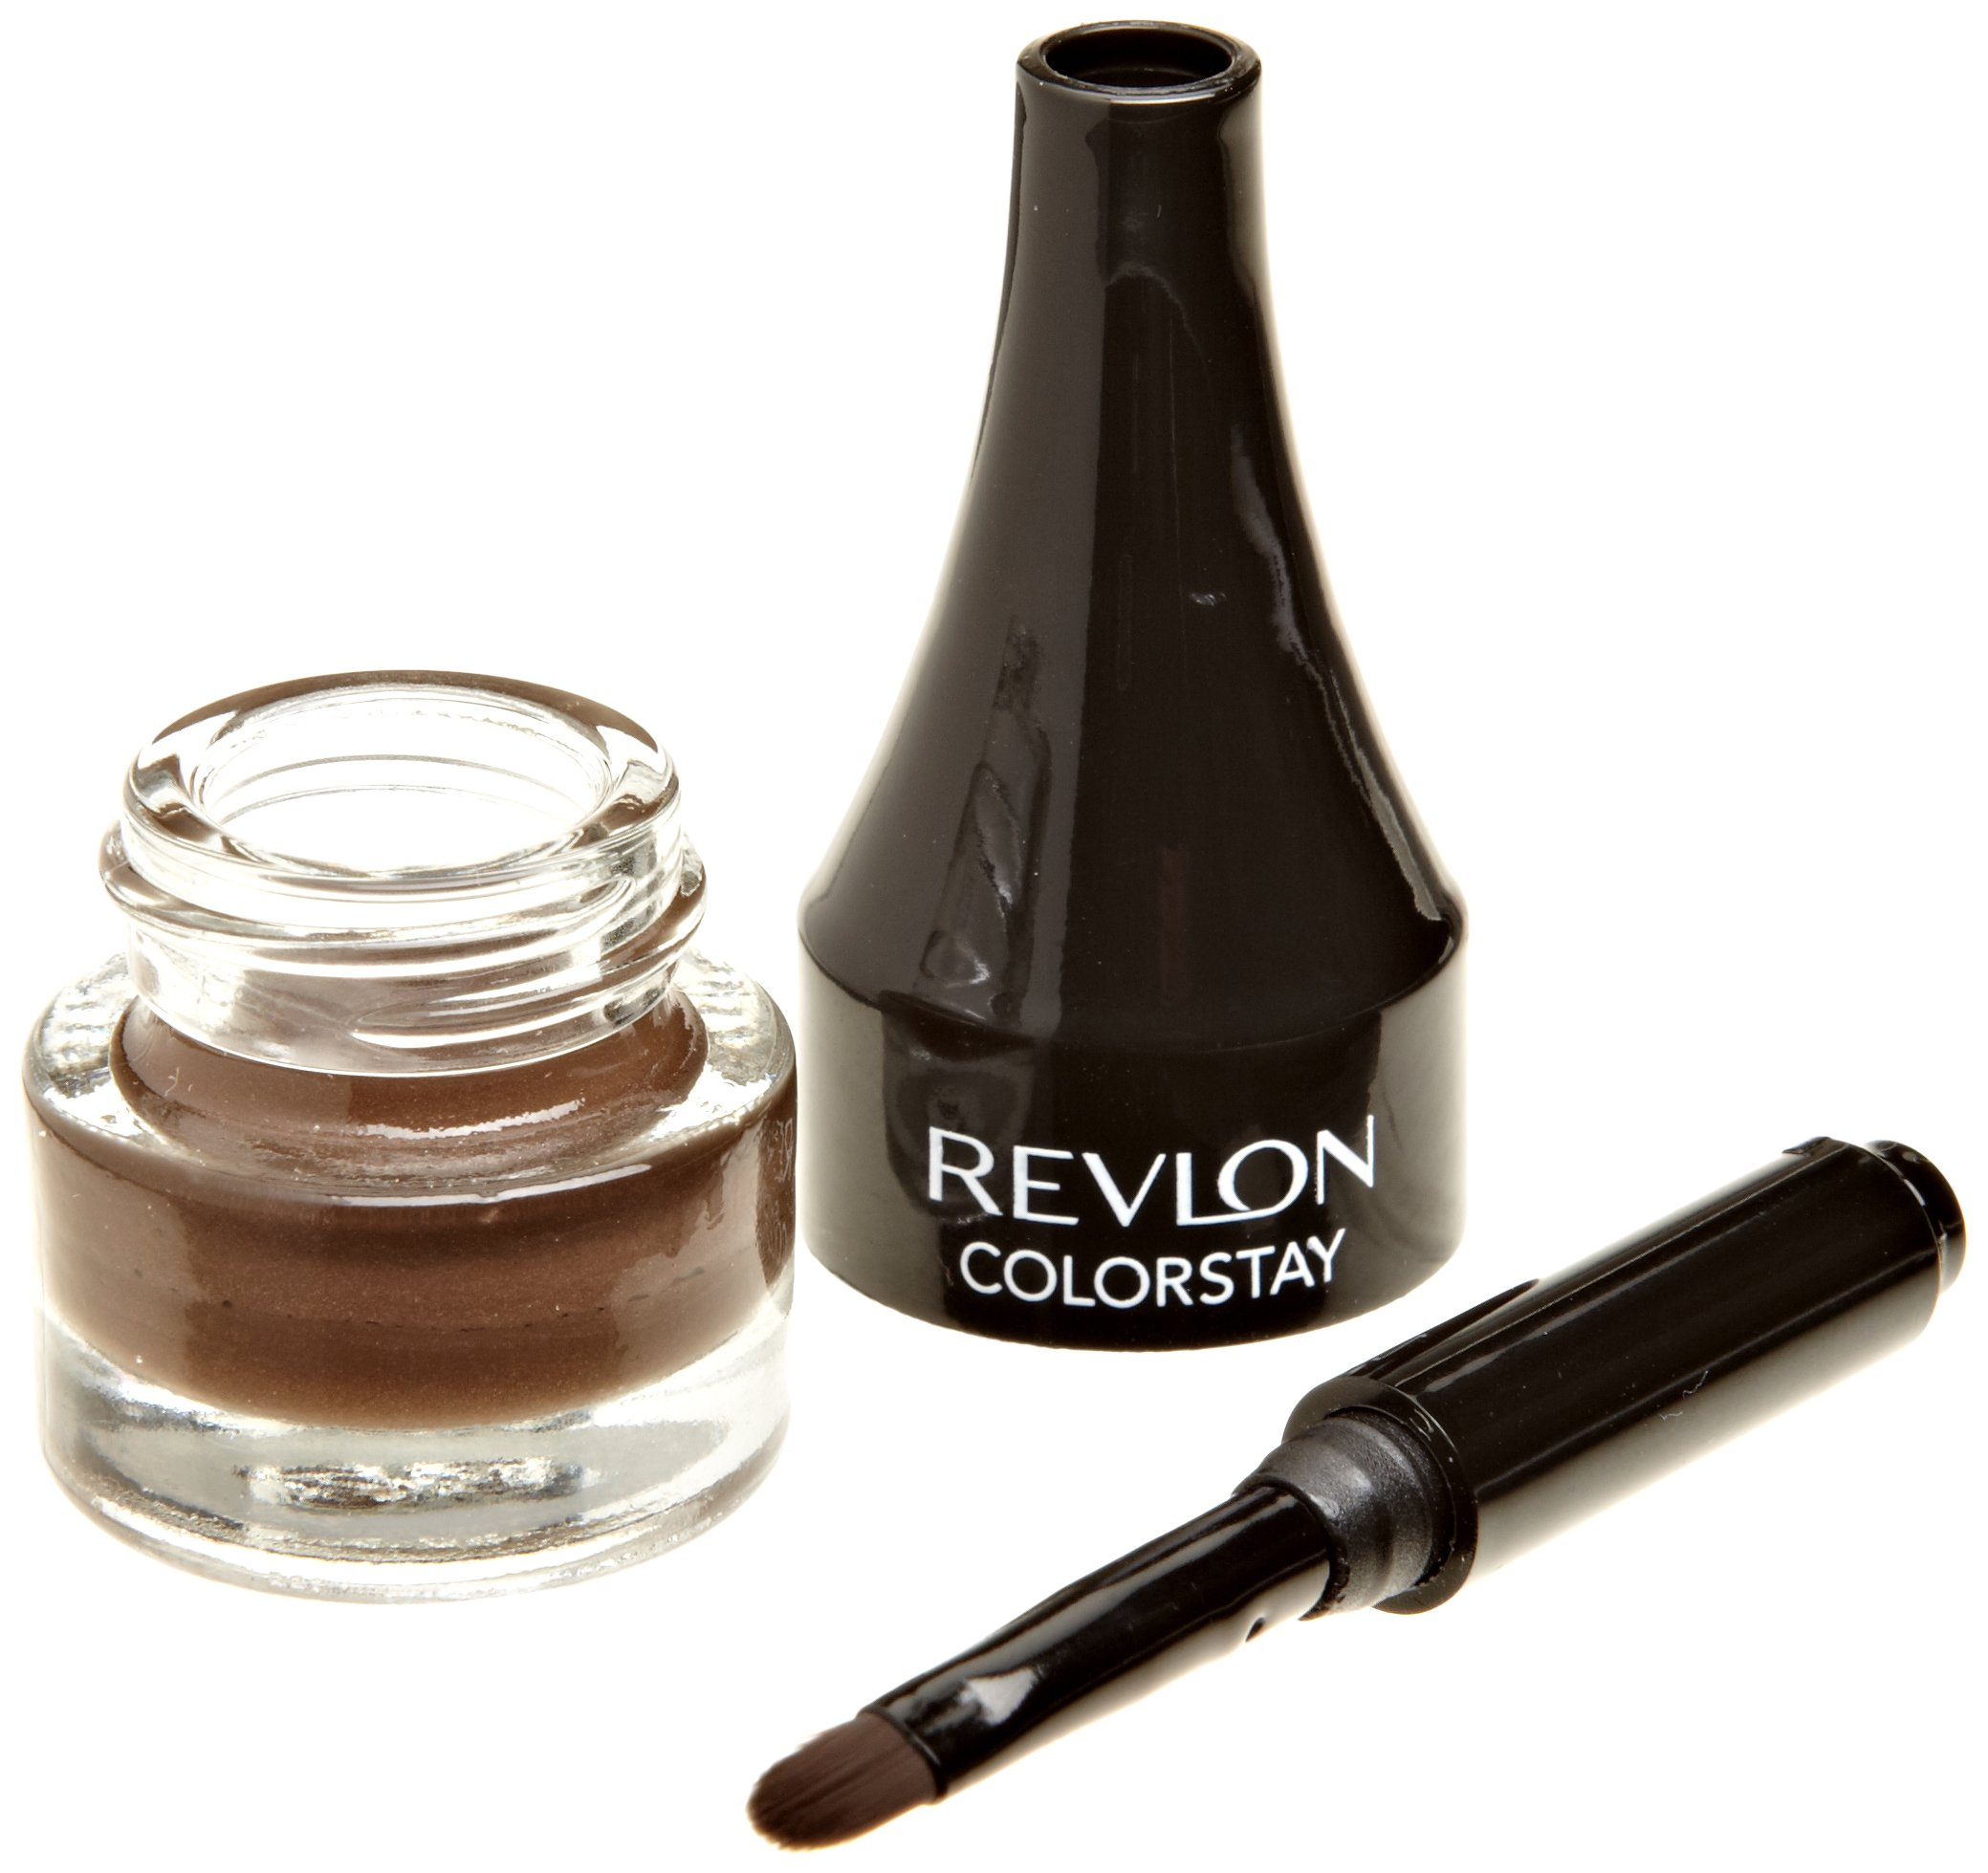 REVLON Colorstay Creme Eyeliner, Brown, 0.08 Ounce by Revlon